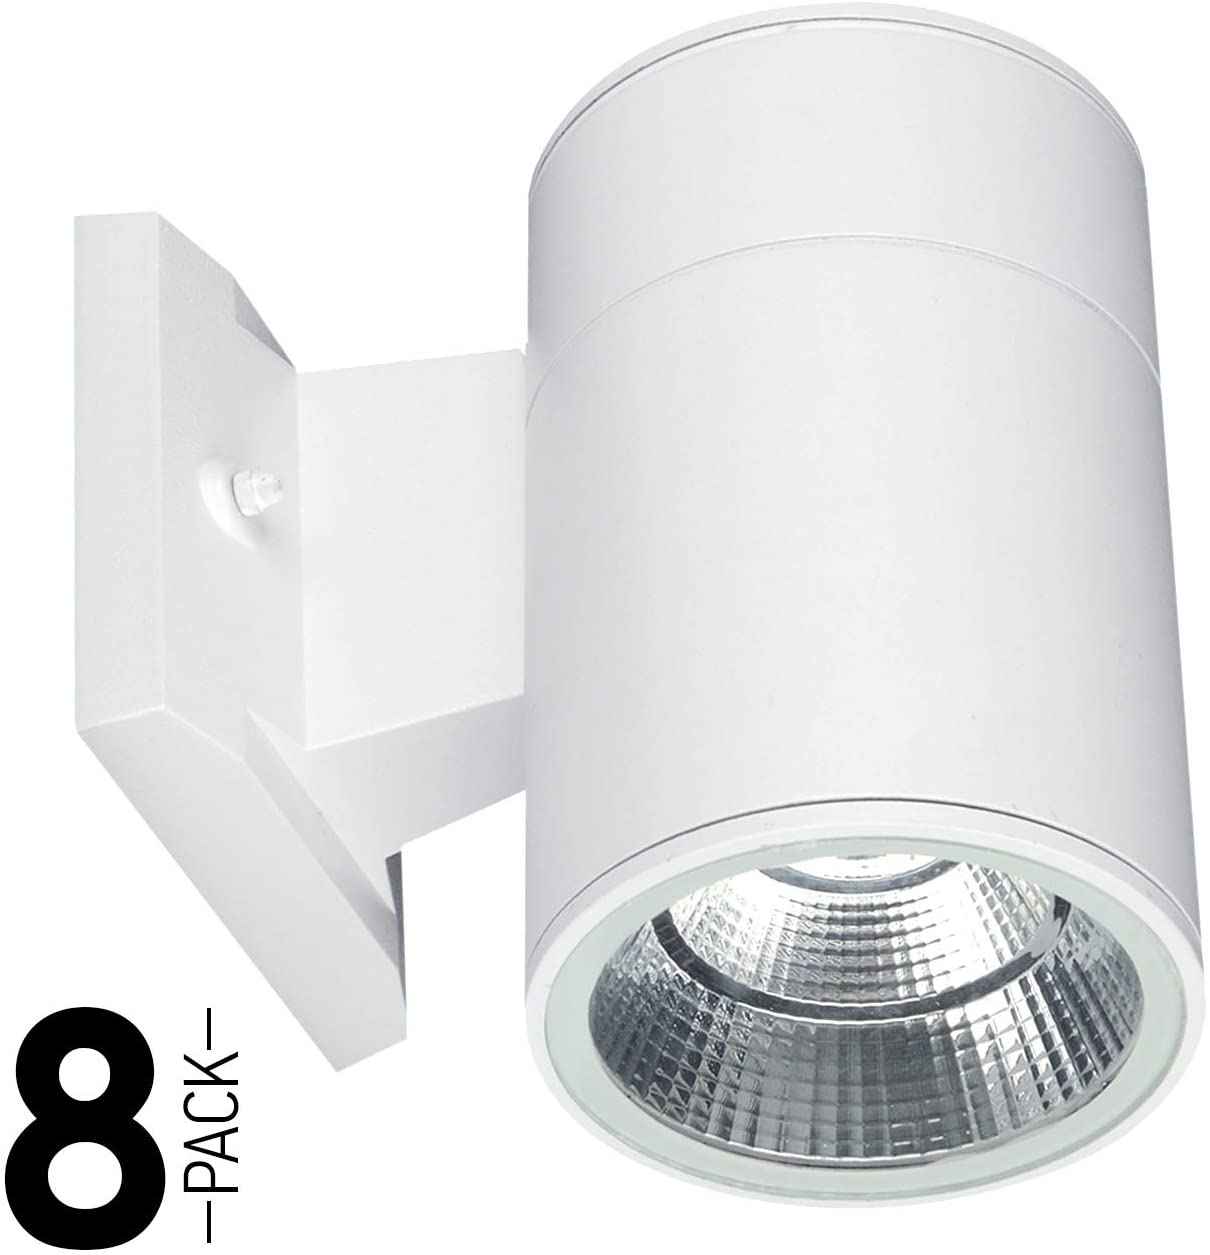 OSTWIN (8 Pack) 1-Direction LED Outdoor Cylinder Up or Down Light, 9W (60W Equivalent), 735 Lumen, 5000K Daylight, Modern Light Fixture for Door Way, Corridor, Waterproof, White, ETL and Energy Star